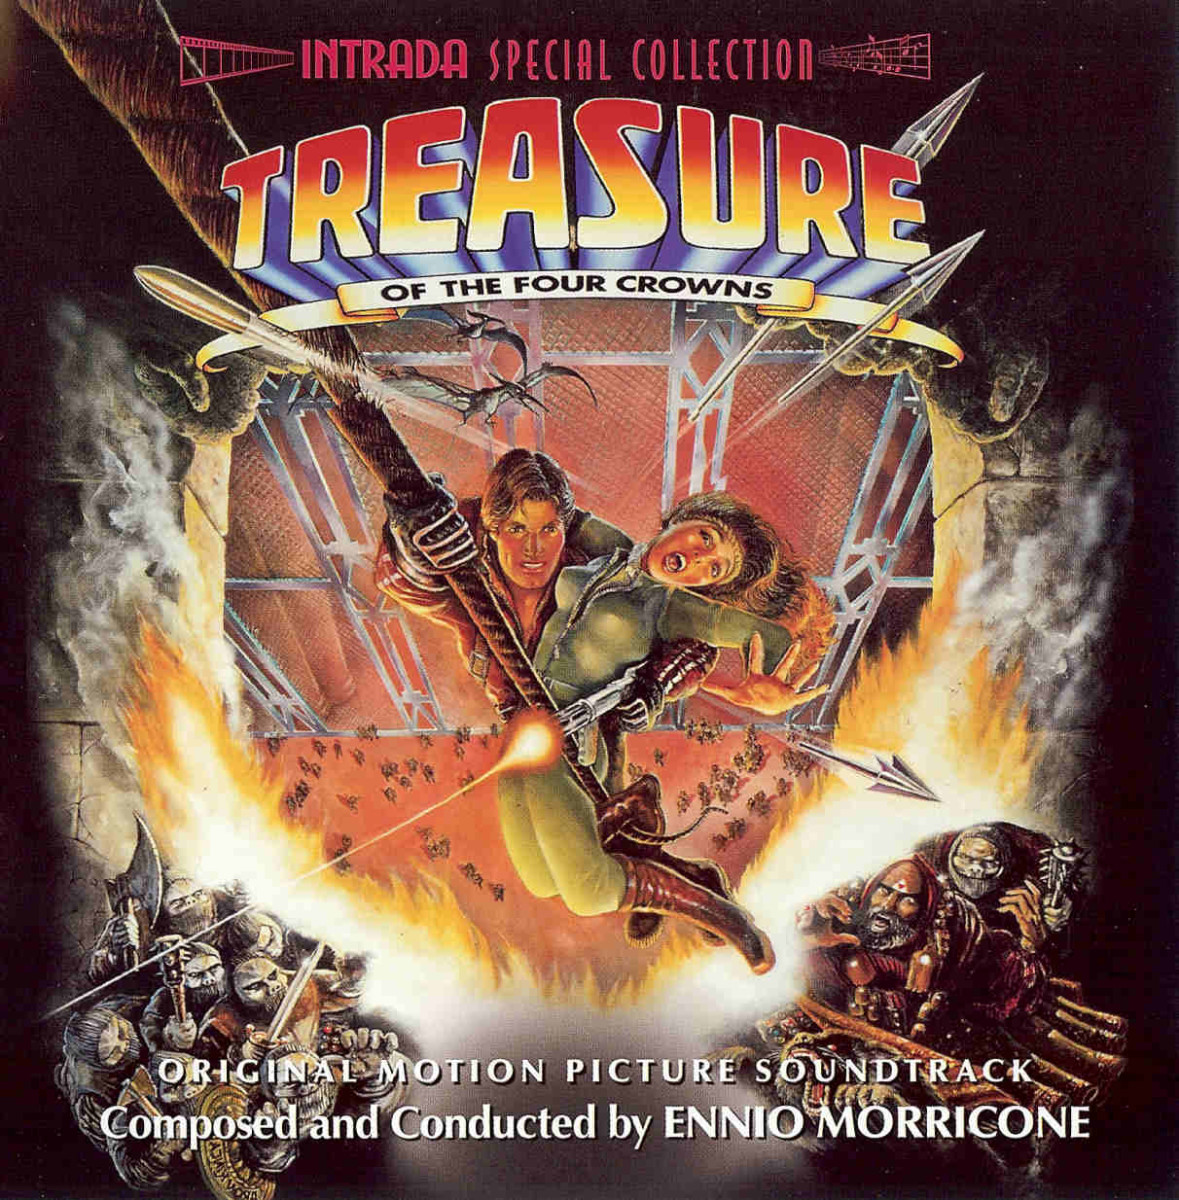 Treasure of the Four Crowns' soundtrack was scored by the great Italian film composer Ennio Morricone.